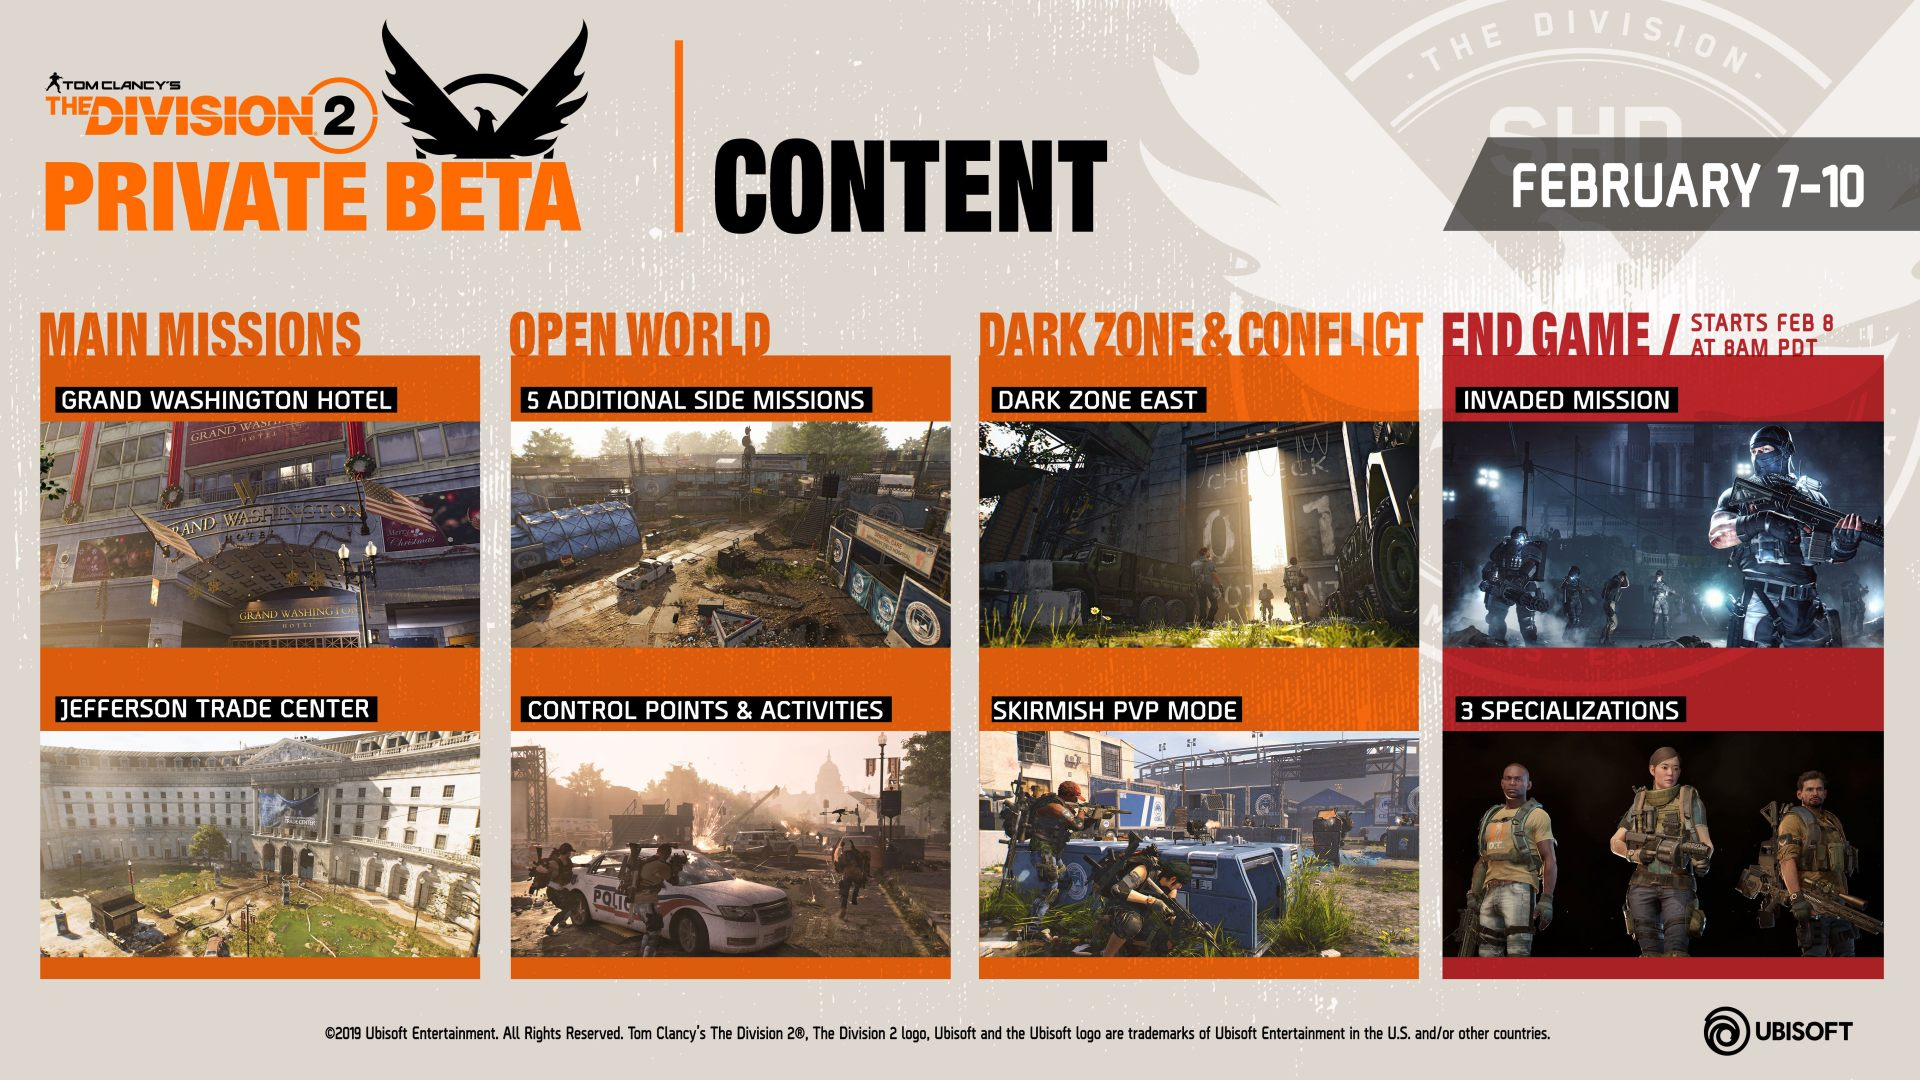 Tom Clancy's The Division 2 Private Beta will include some endgame content